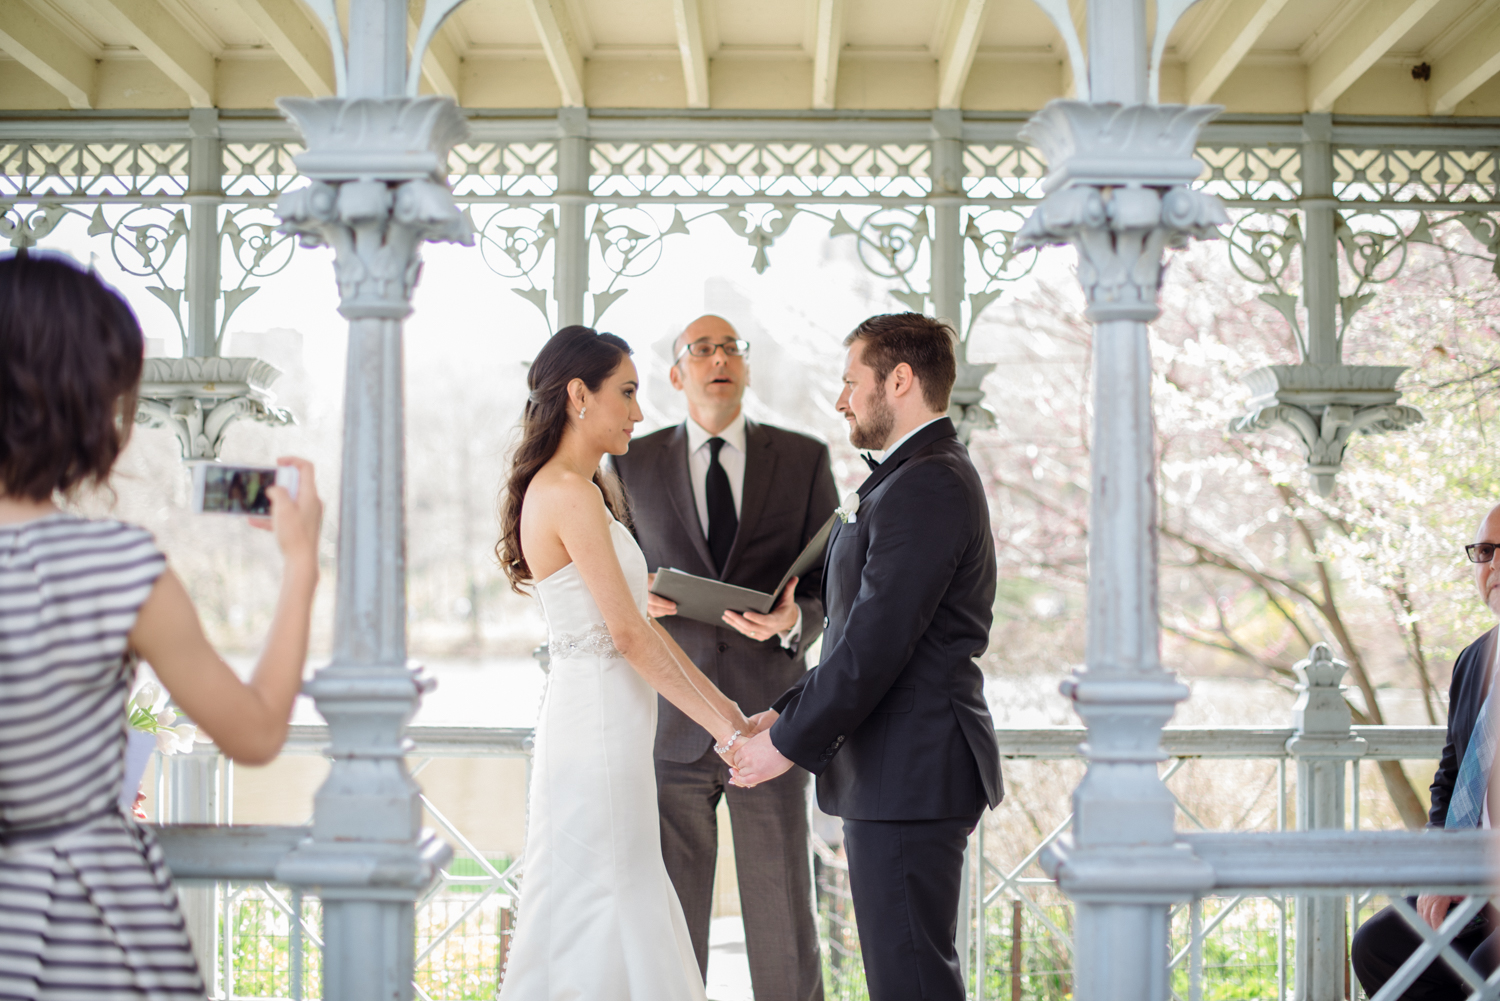 Anahi+David- Central Park Elopement- New York City- Olivia Christina Photo (120).JPG